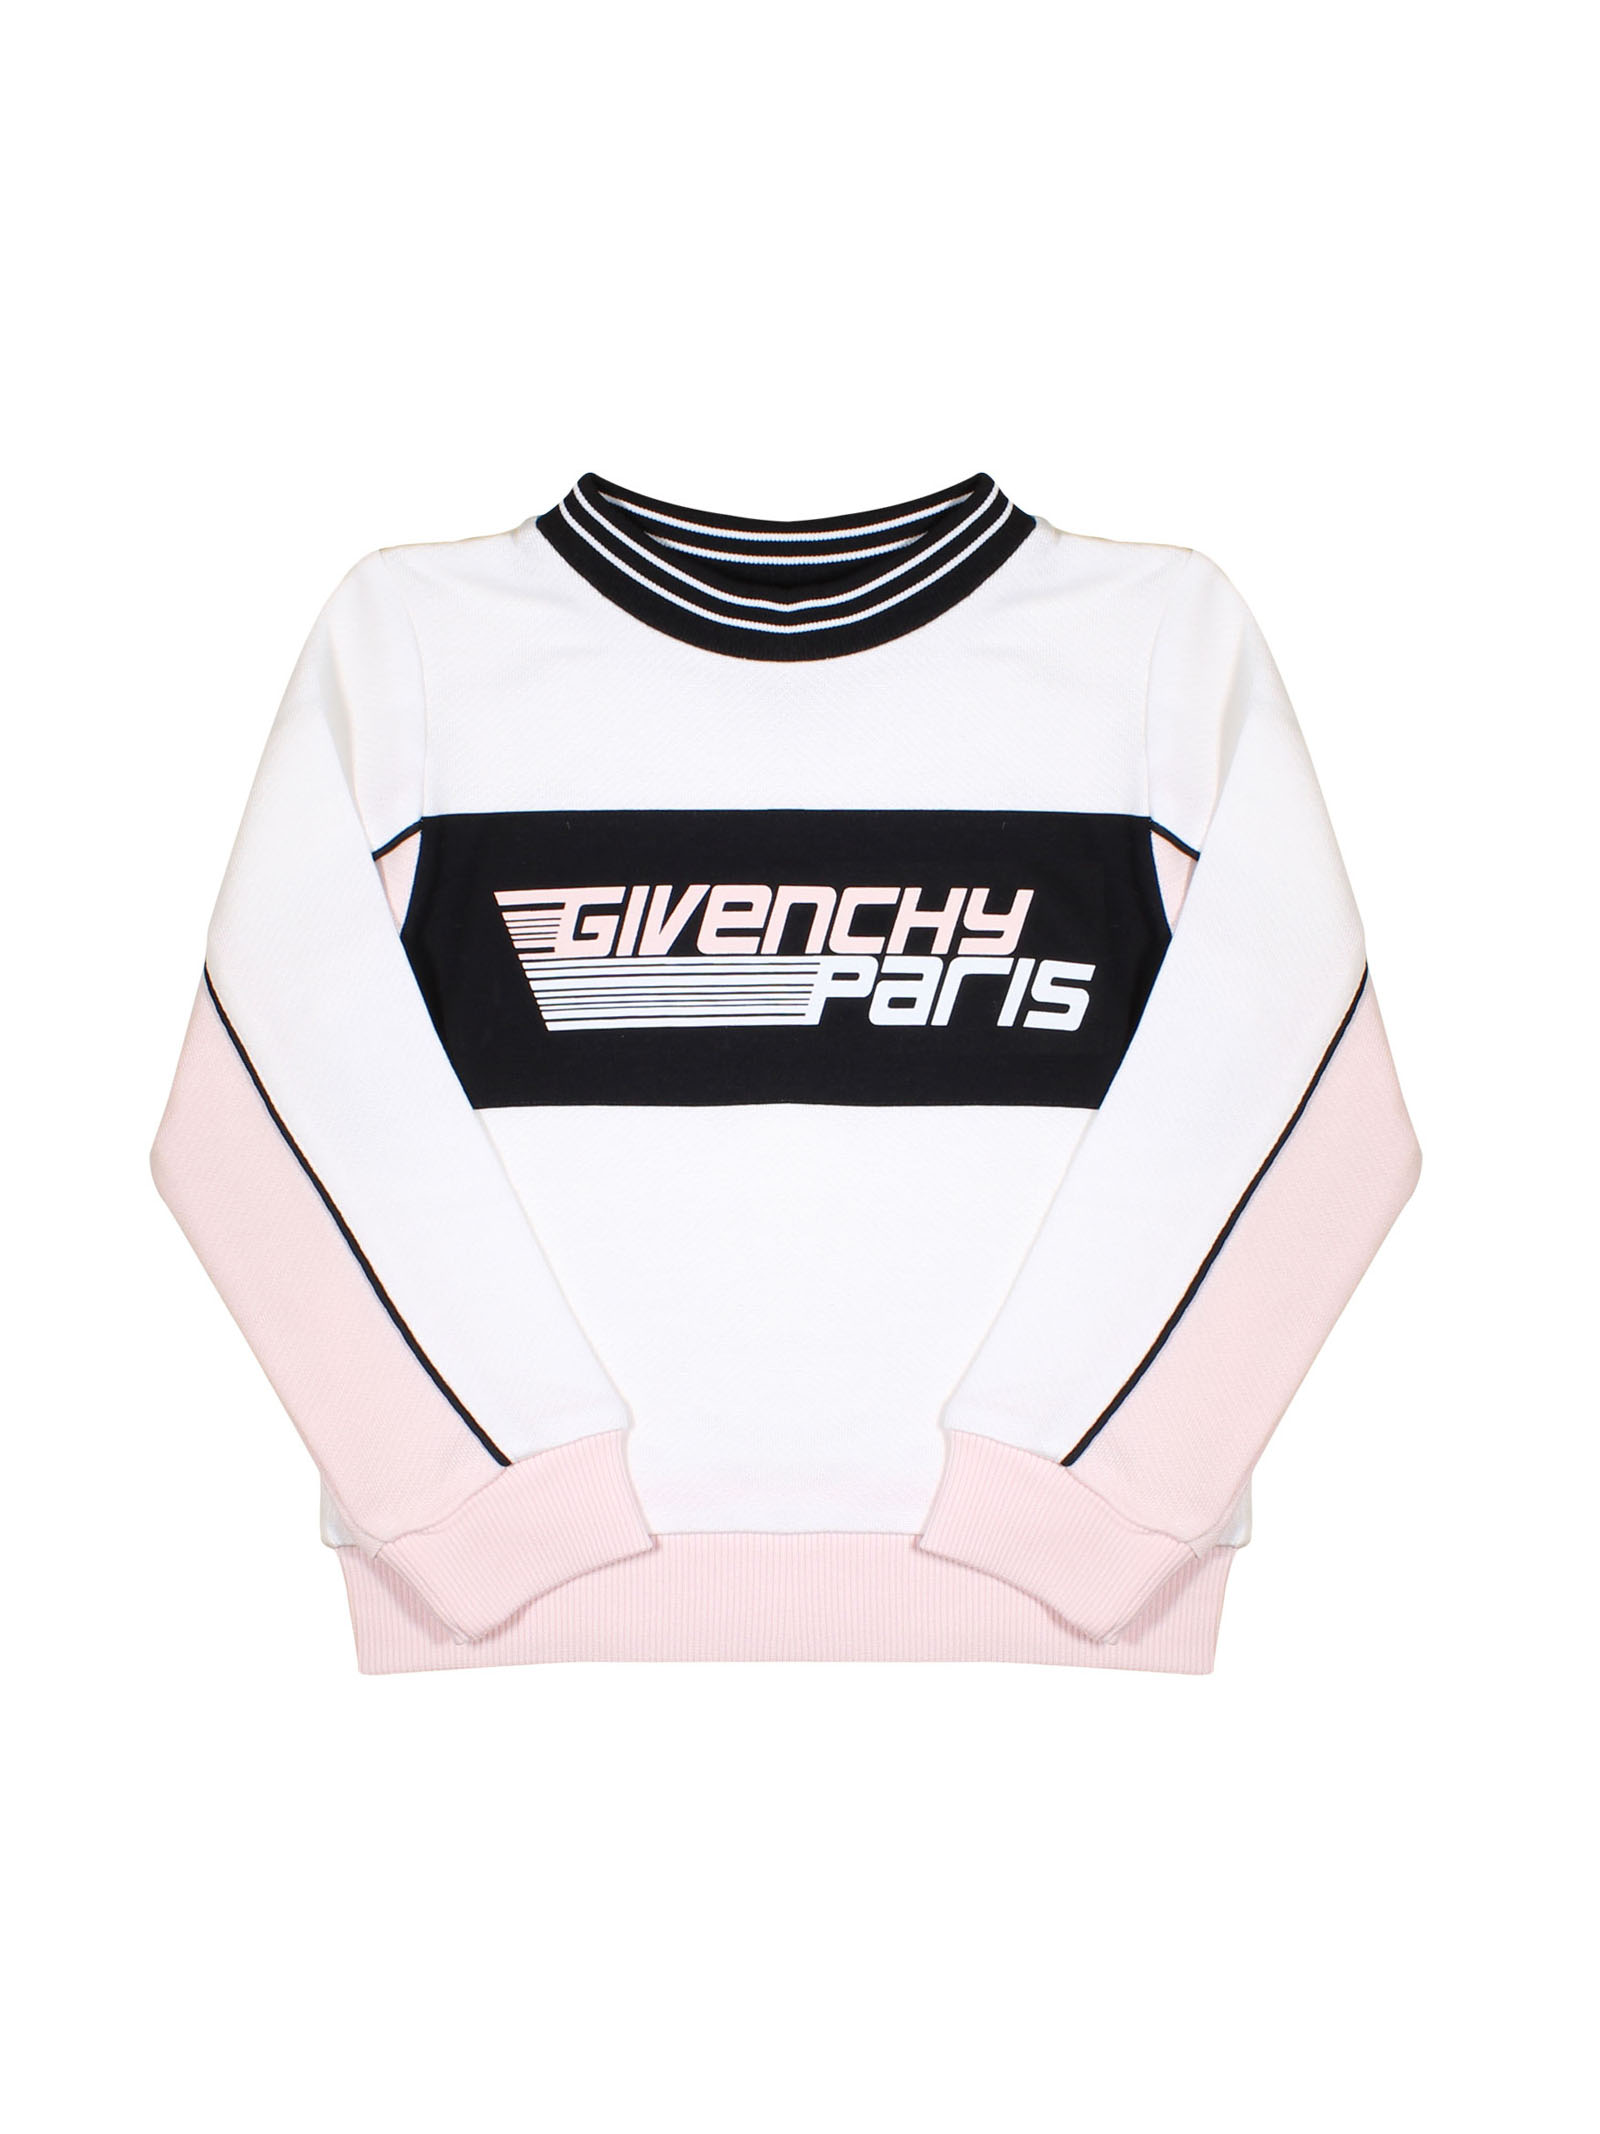 5e8d941a8a ... WHITE AND ROSE SWEATSHIRT WITH BLACK DETAILS GIVENCHY KIDS GIRL  Givenchy Kids | -108764232 ...